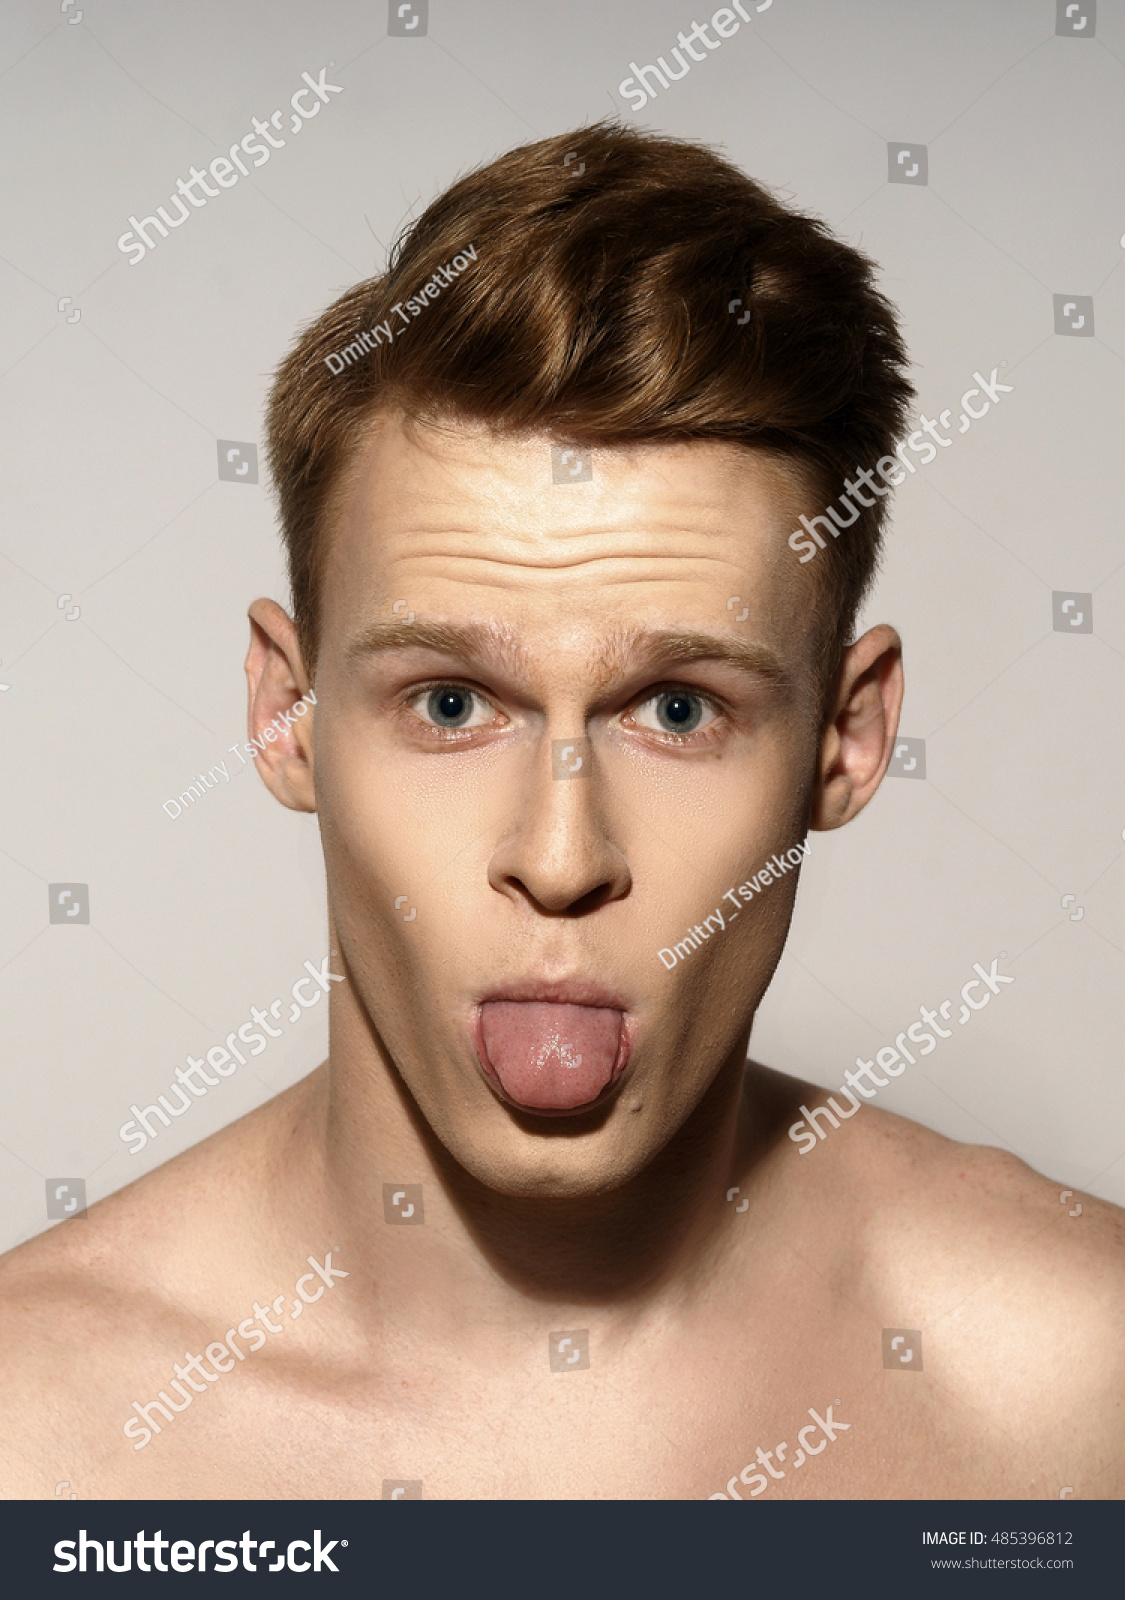 Studio Fashion Style Closeup Face Portrait Of Young Emotional Man Looking In Camera And Showing